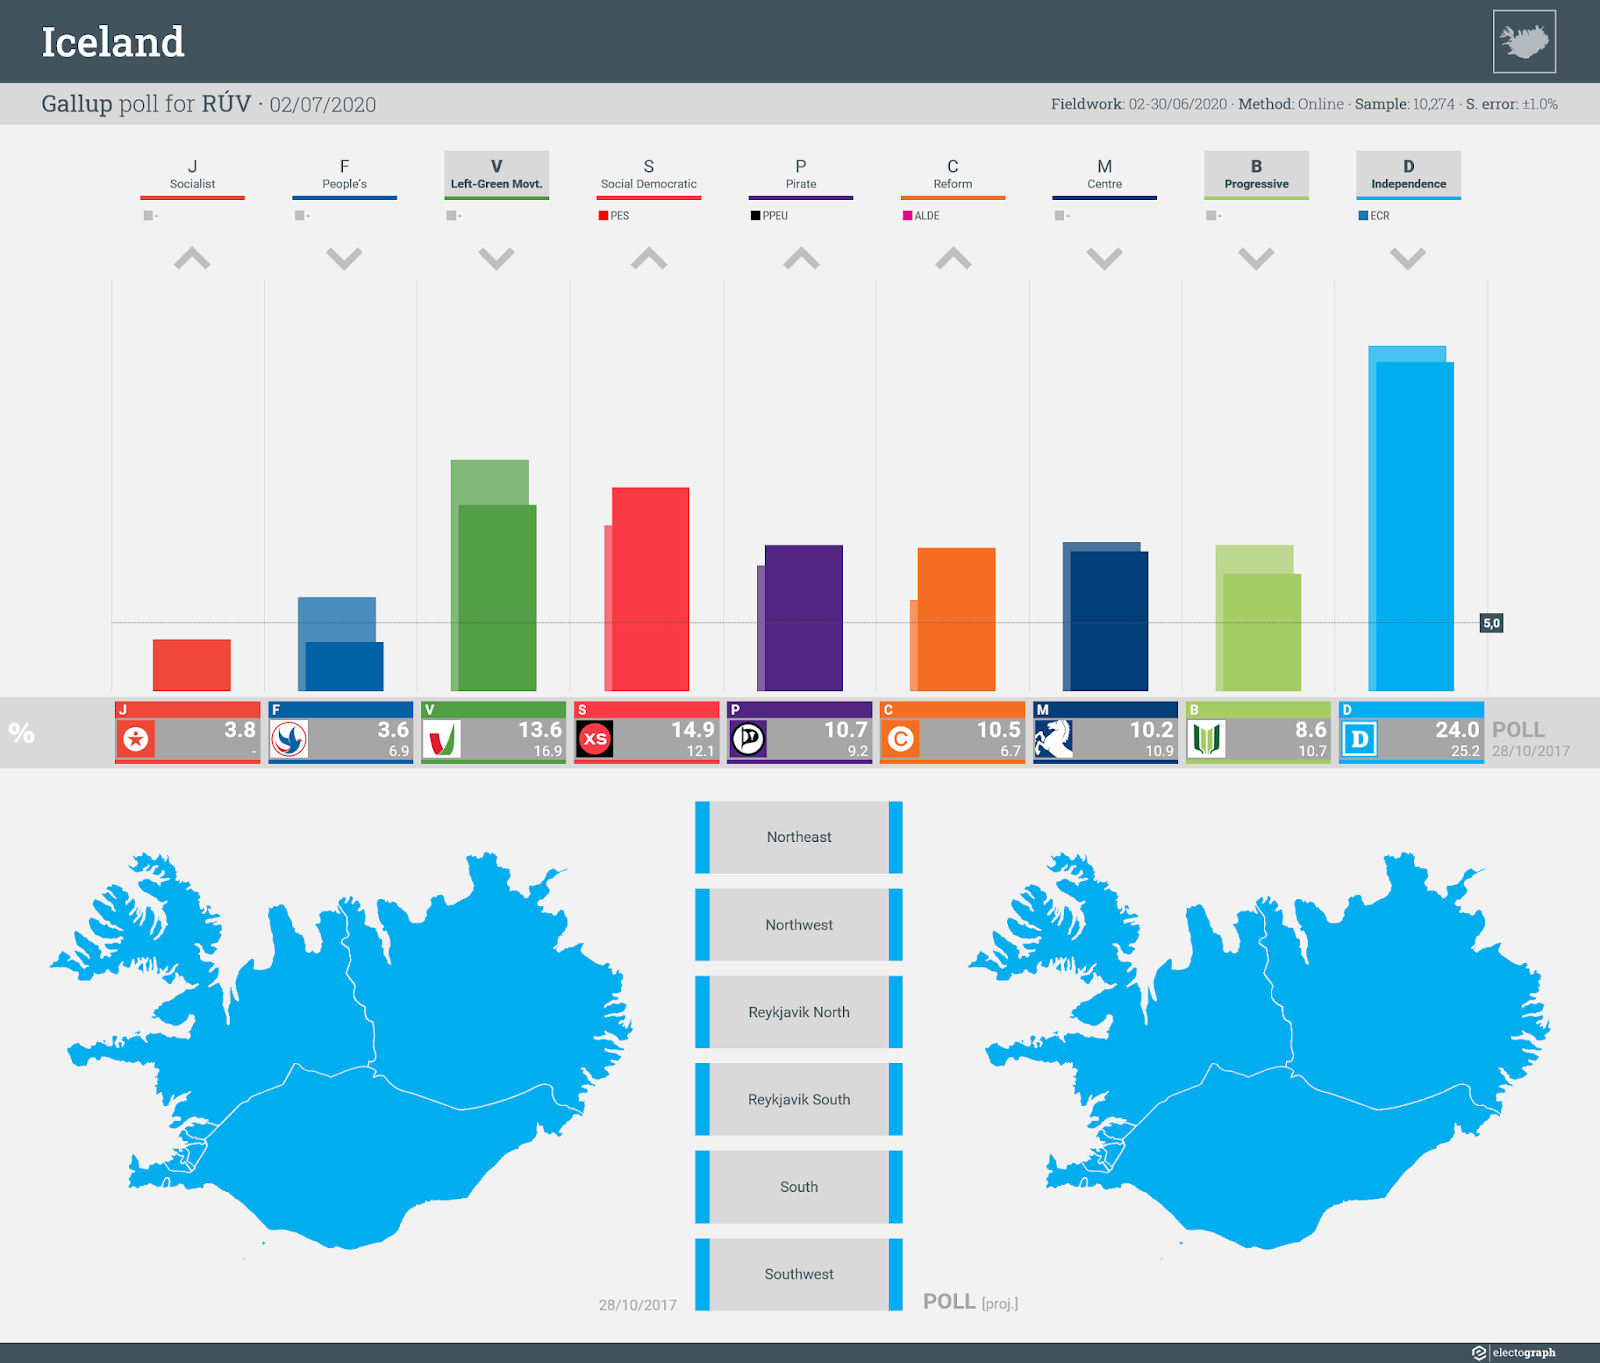 ICELAND: Gallup poll chart for RÚV, 2 July 2020